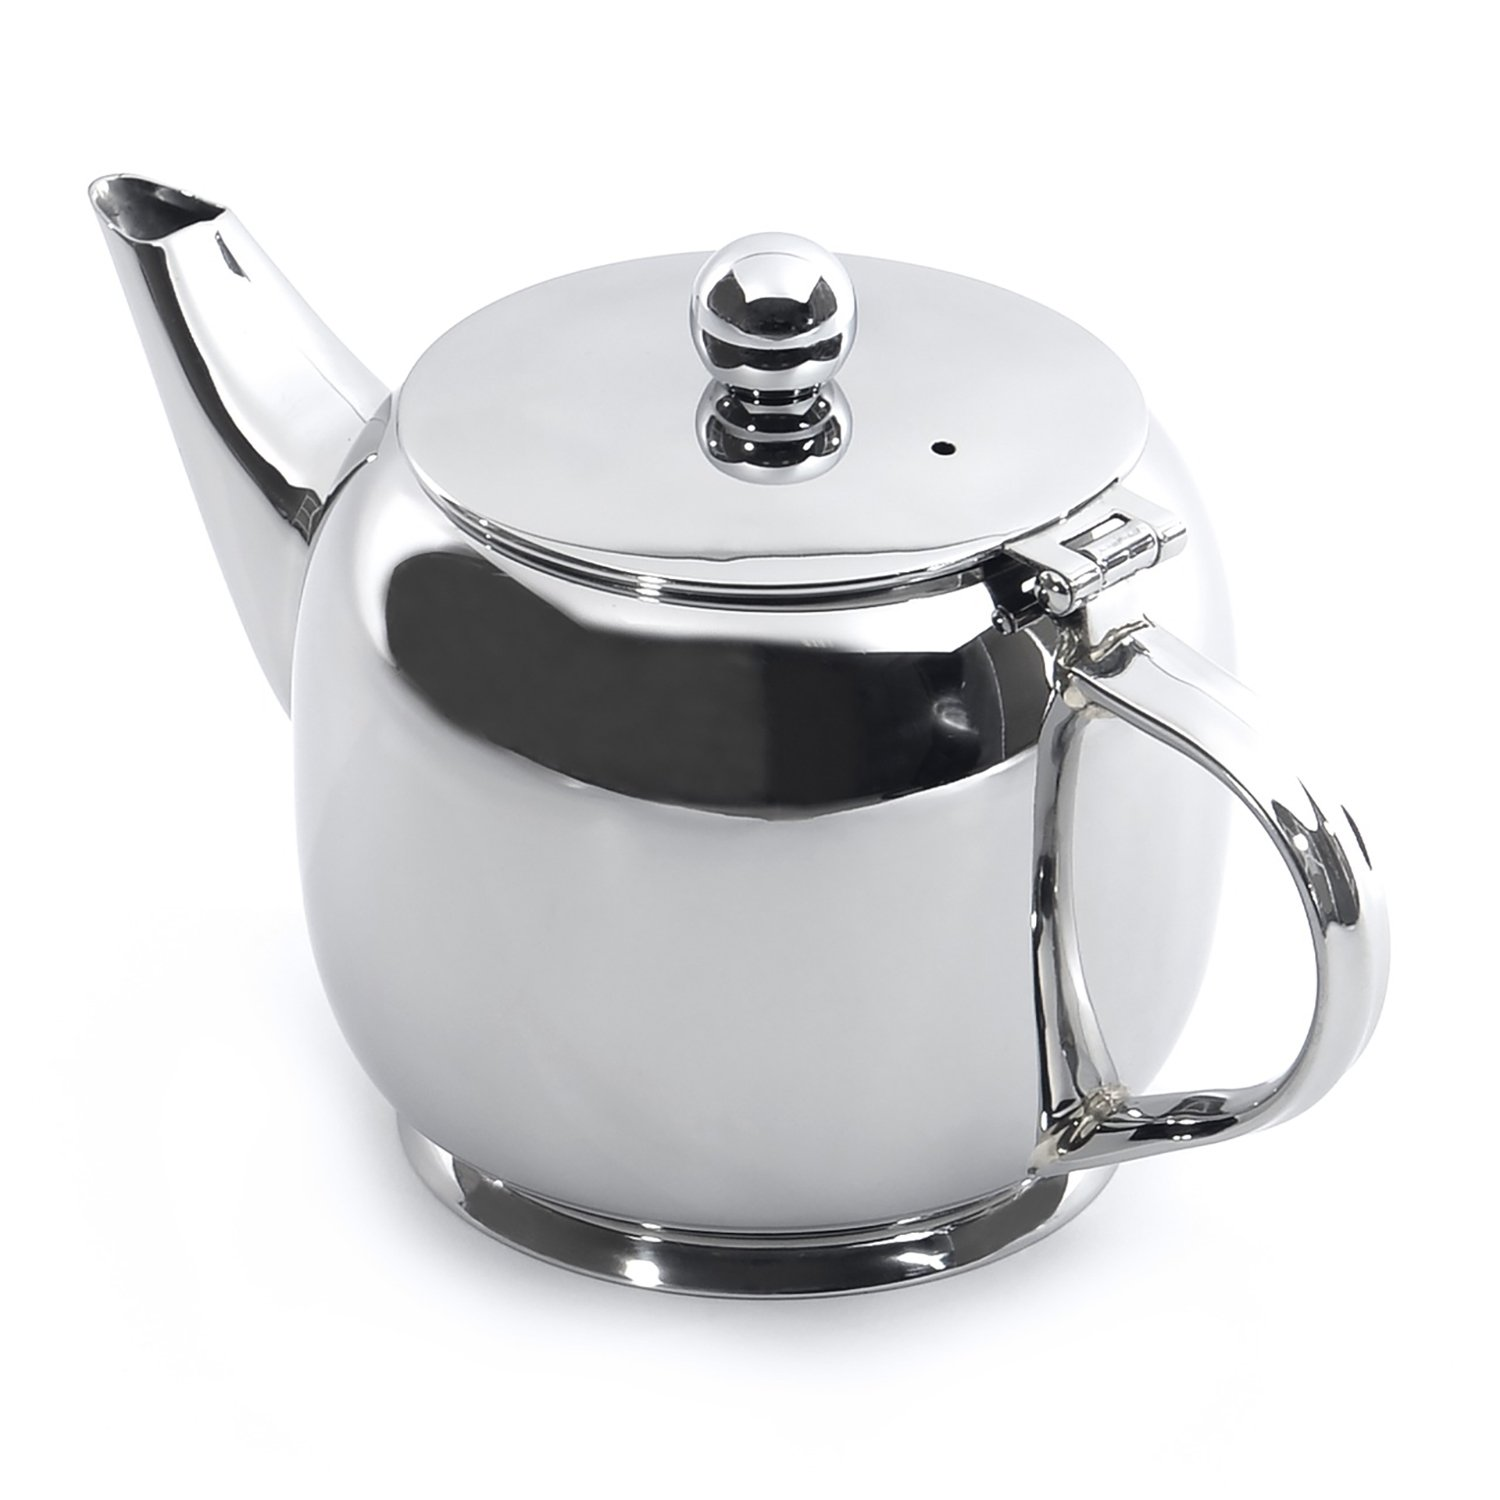 BergHOFF Hotel Stainless Steel Teapot, 0.7 quart, Silver